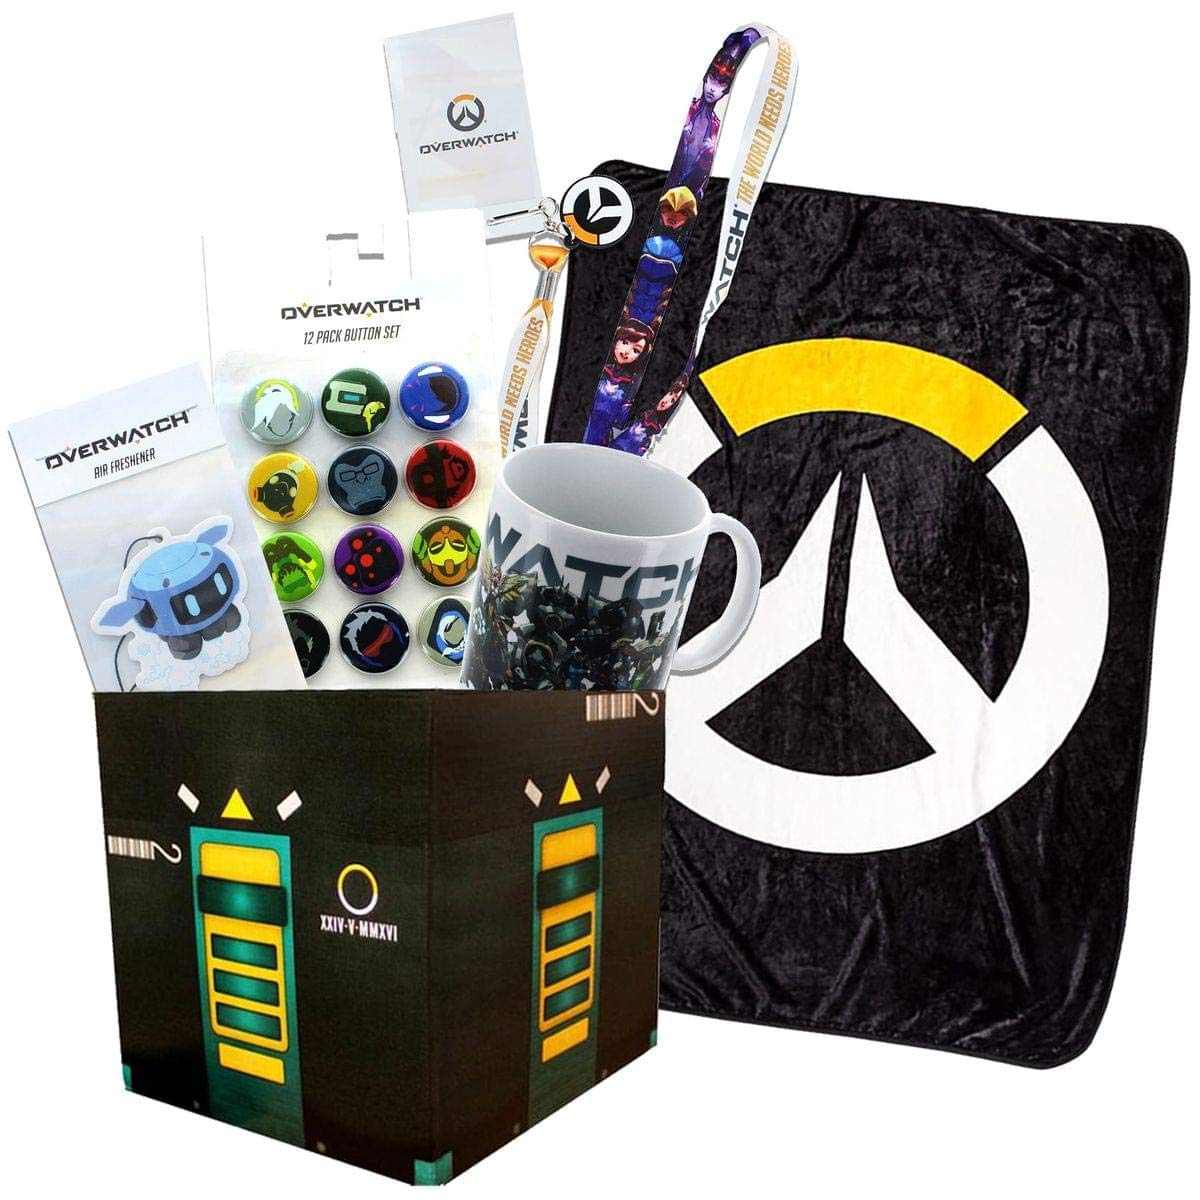 Toynk Overwatch Collectibles |Collectors Looksee Box | Fleece Blanket | Mug | Pins